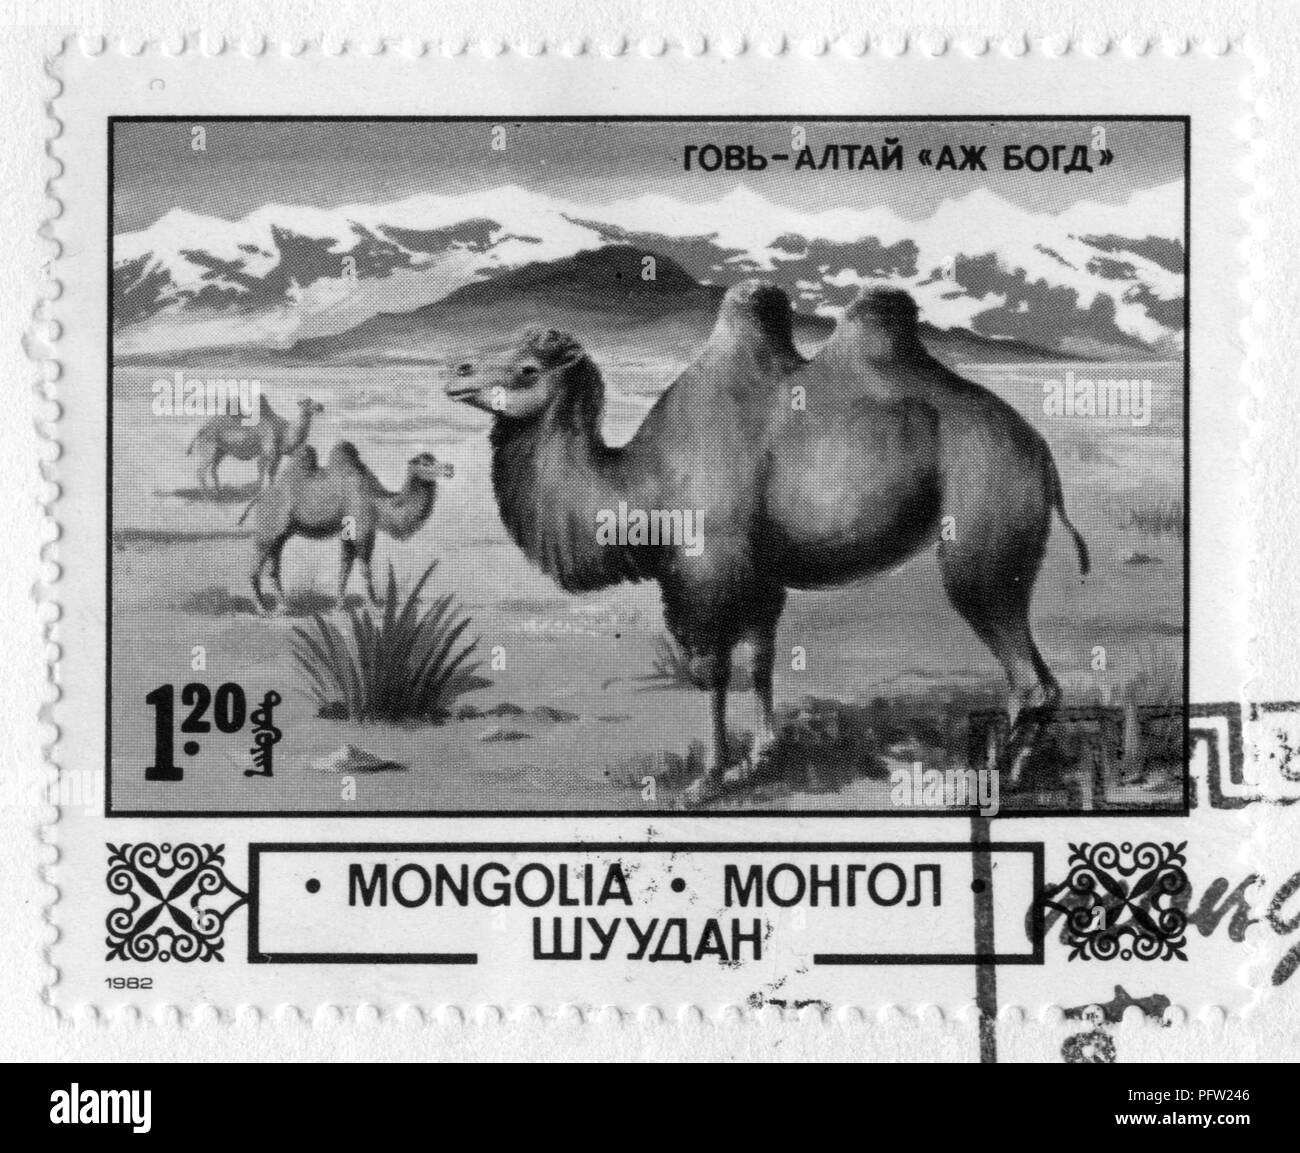 Stamp print in Mongolia - Stock Image